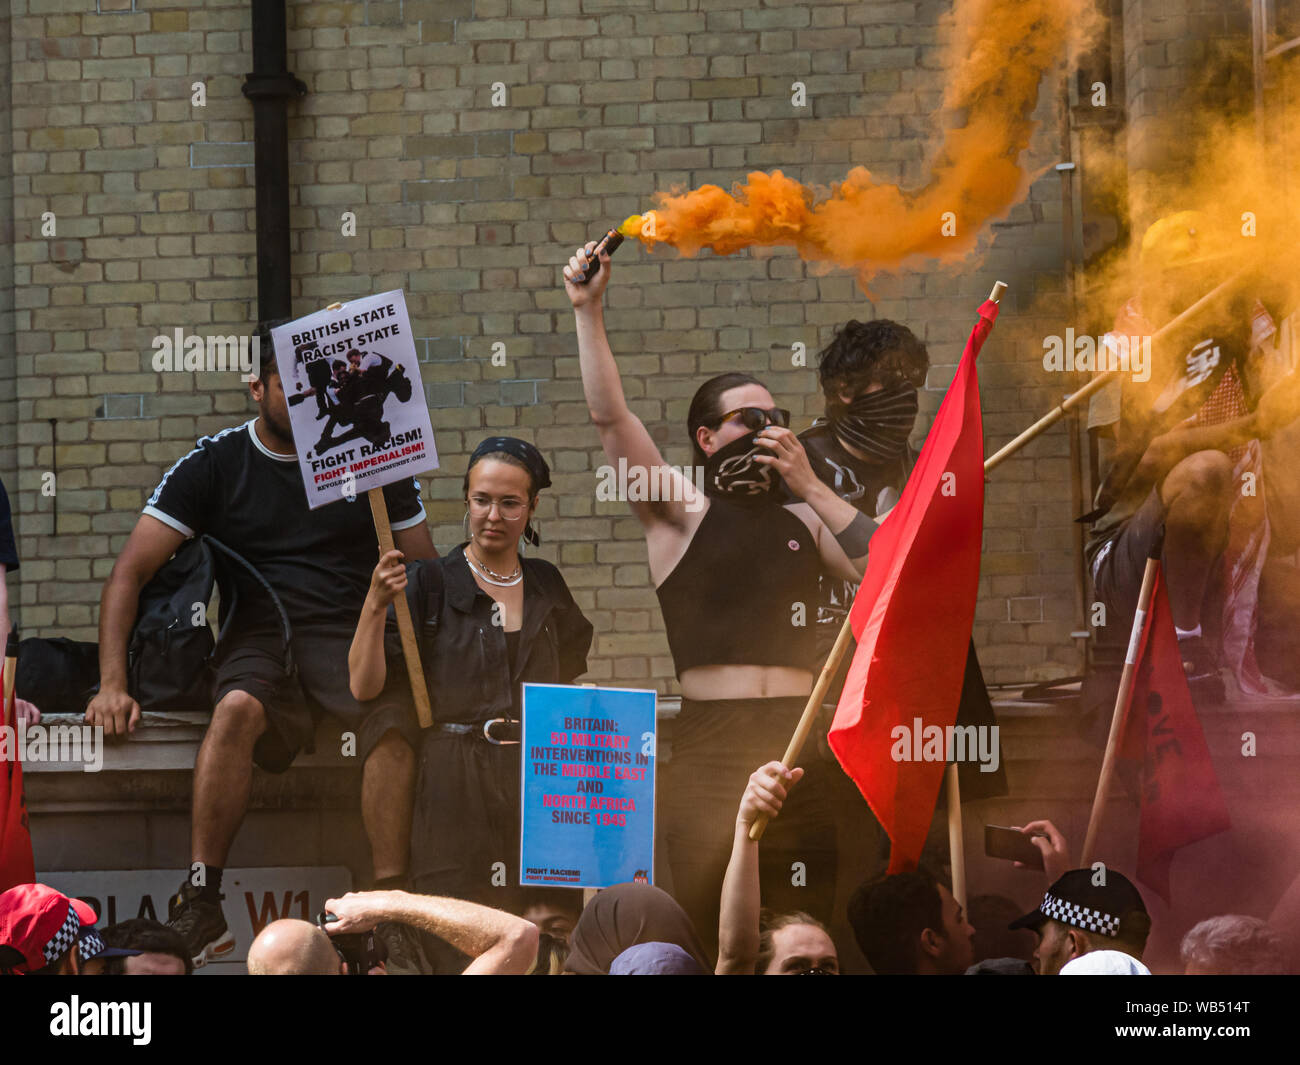 London, UK. 24th August 2019. Anti-fascists hold placards and flares as they oppose a protest at the BBC by Tommy Robinson supporters who claim he is in jail for journalism. He was sentenced to 9 months for 3 offences outside Leeds Crown Court which could have led to the collapse of a grooming gang trial, and has previous convictions for violence, financial and immigration frauds, drug possession and public order offences. Police kept the two groups apart. Robinson supporters were later joined by marchers from Trafalgar Square, and a larger group from Stand Up to Racism came to join Antifa. Pe Stock Photo